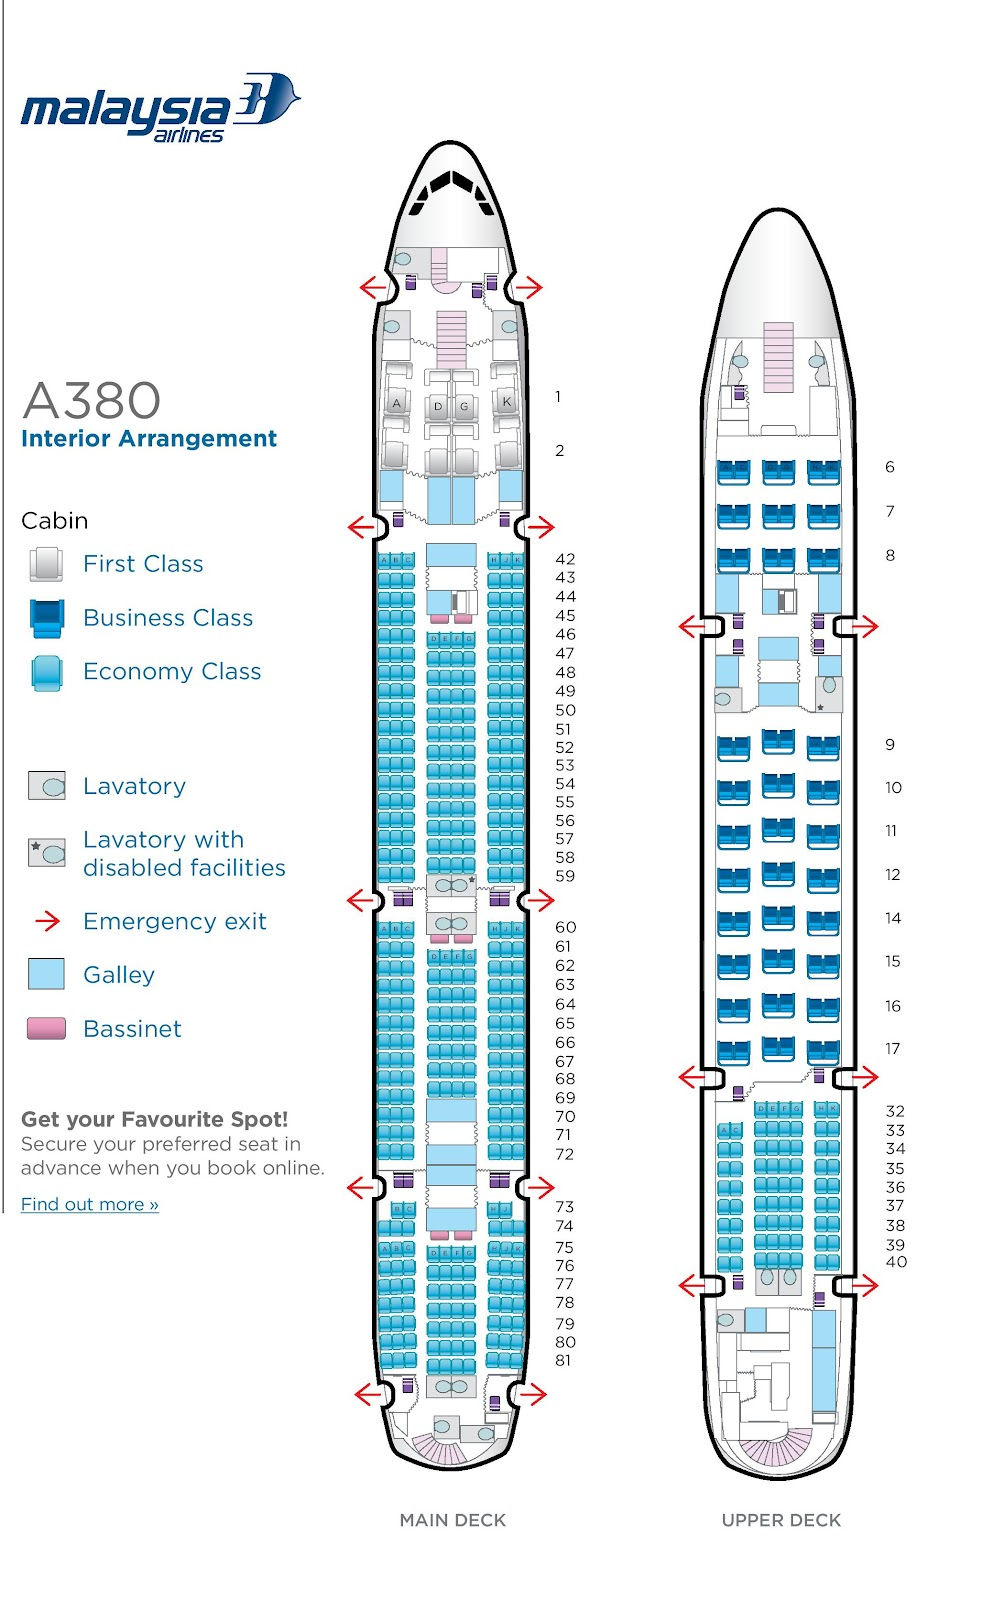 Photo Airbus A380 Floor Plan Images Photo Airbus A380